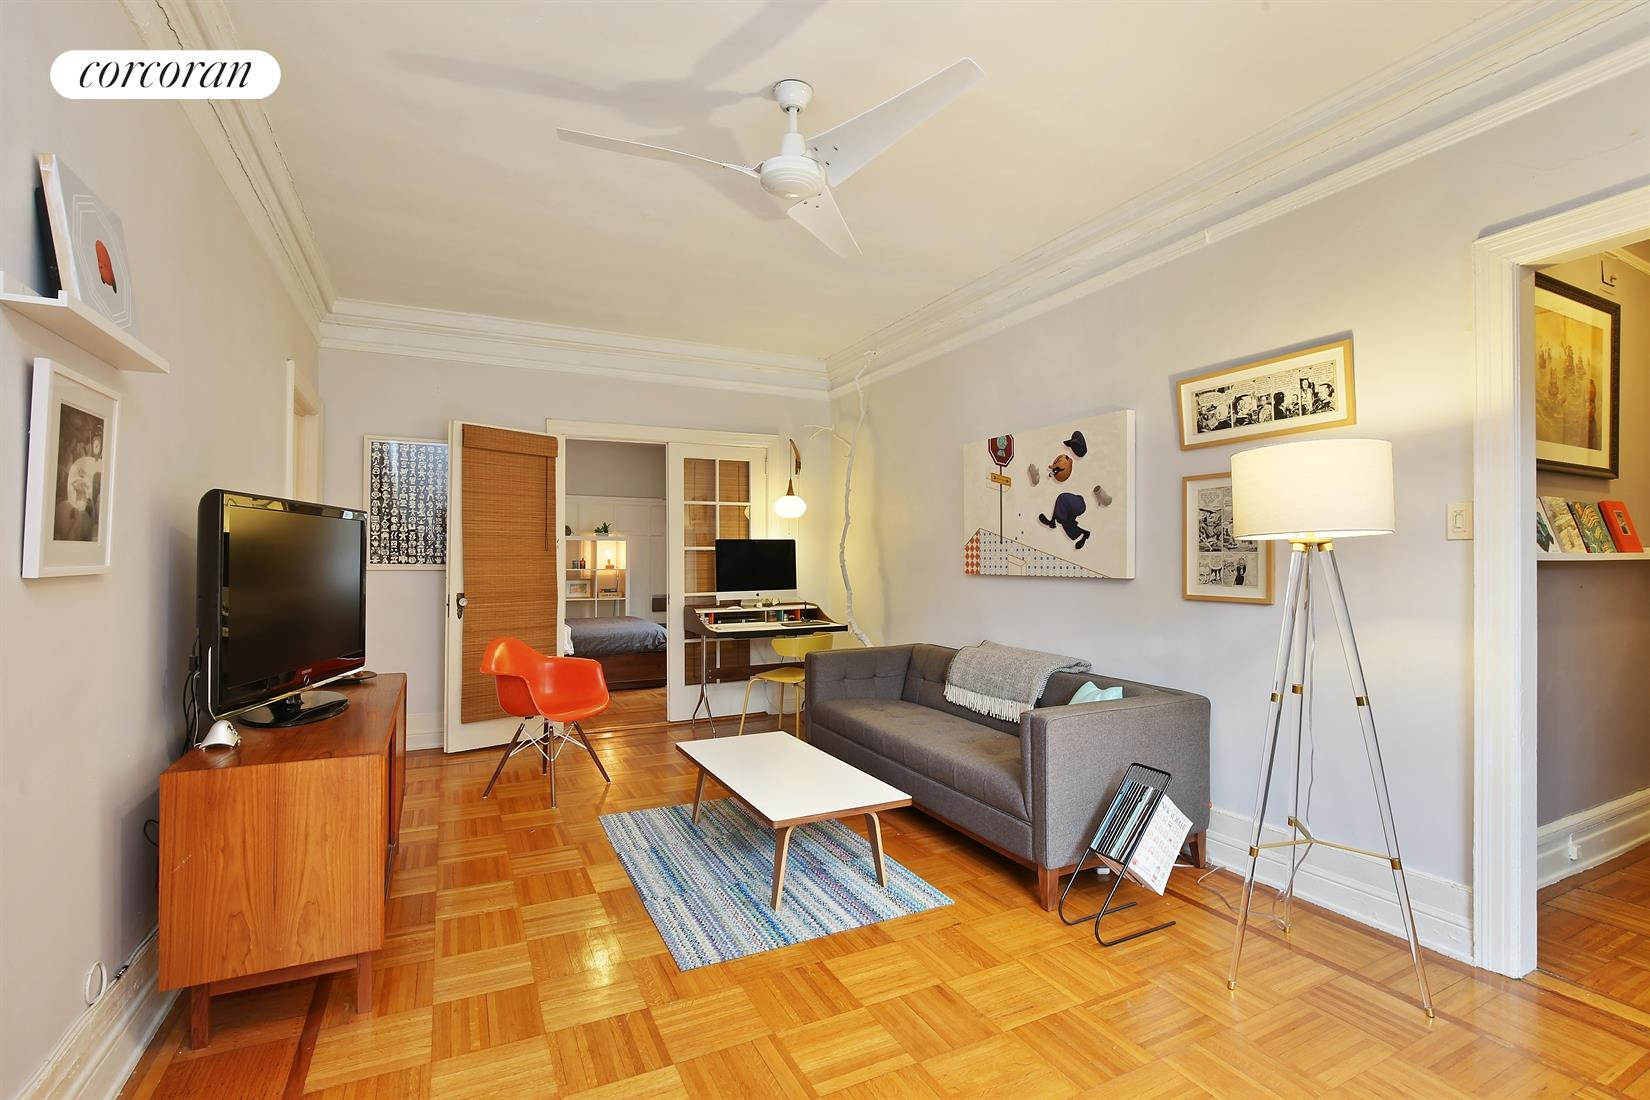 109 SEAMAN AVE, 5G, Living Room